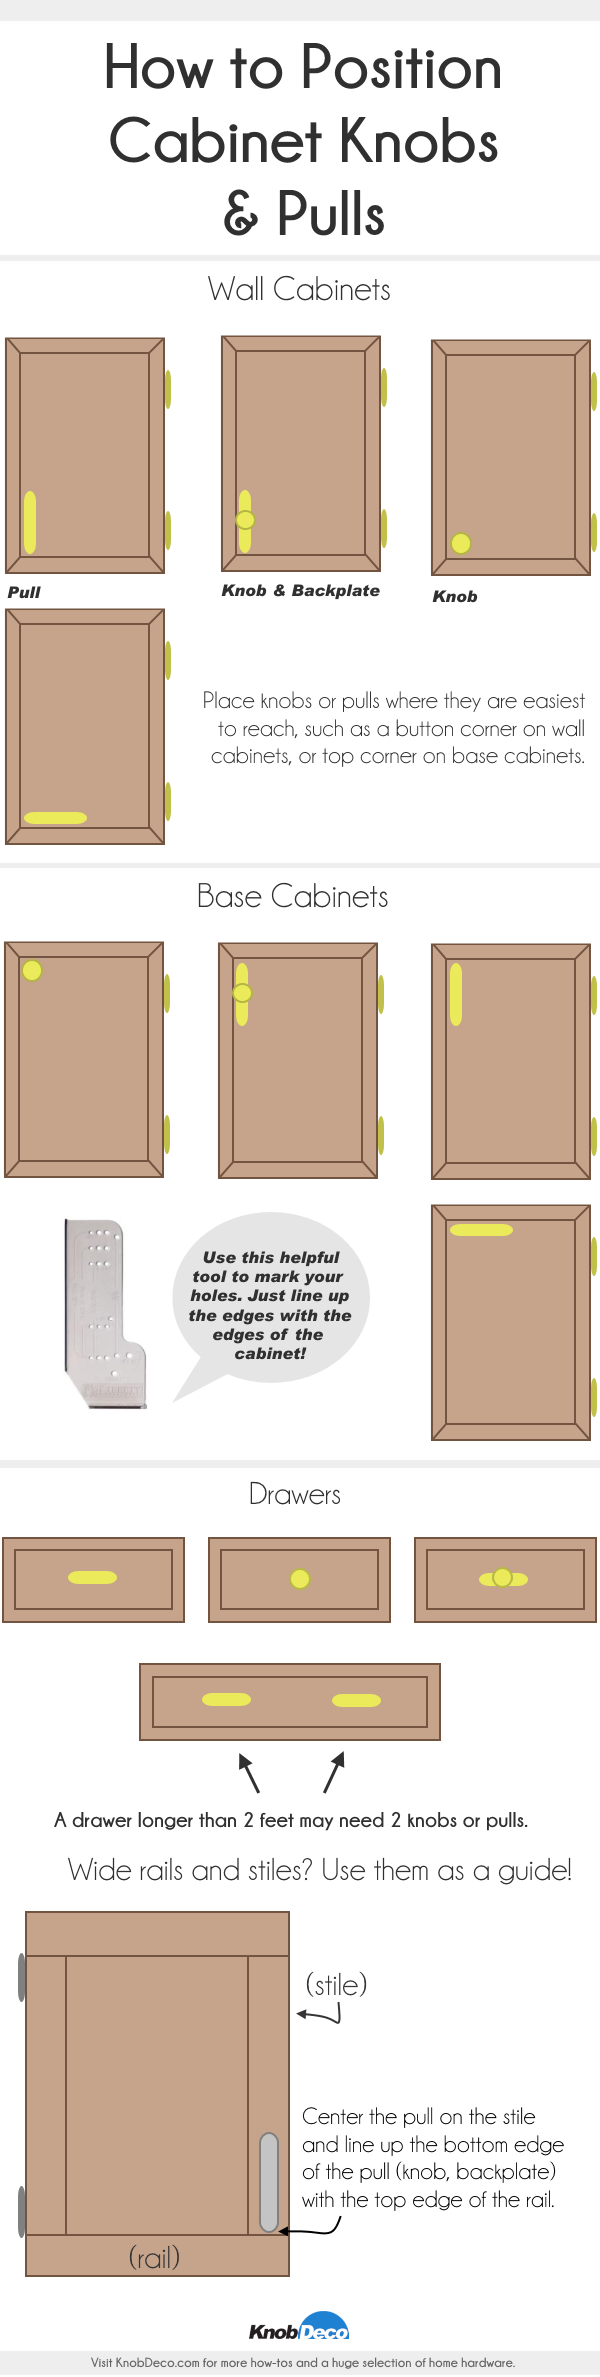 How To Position Cabinet Knobs For Installation. #remodel #interiordesign  #diy